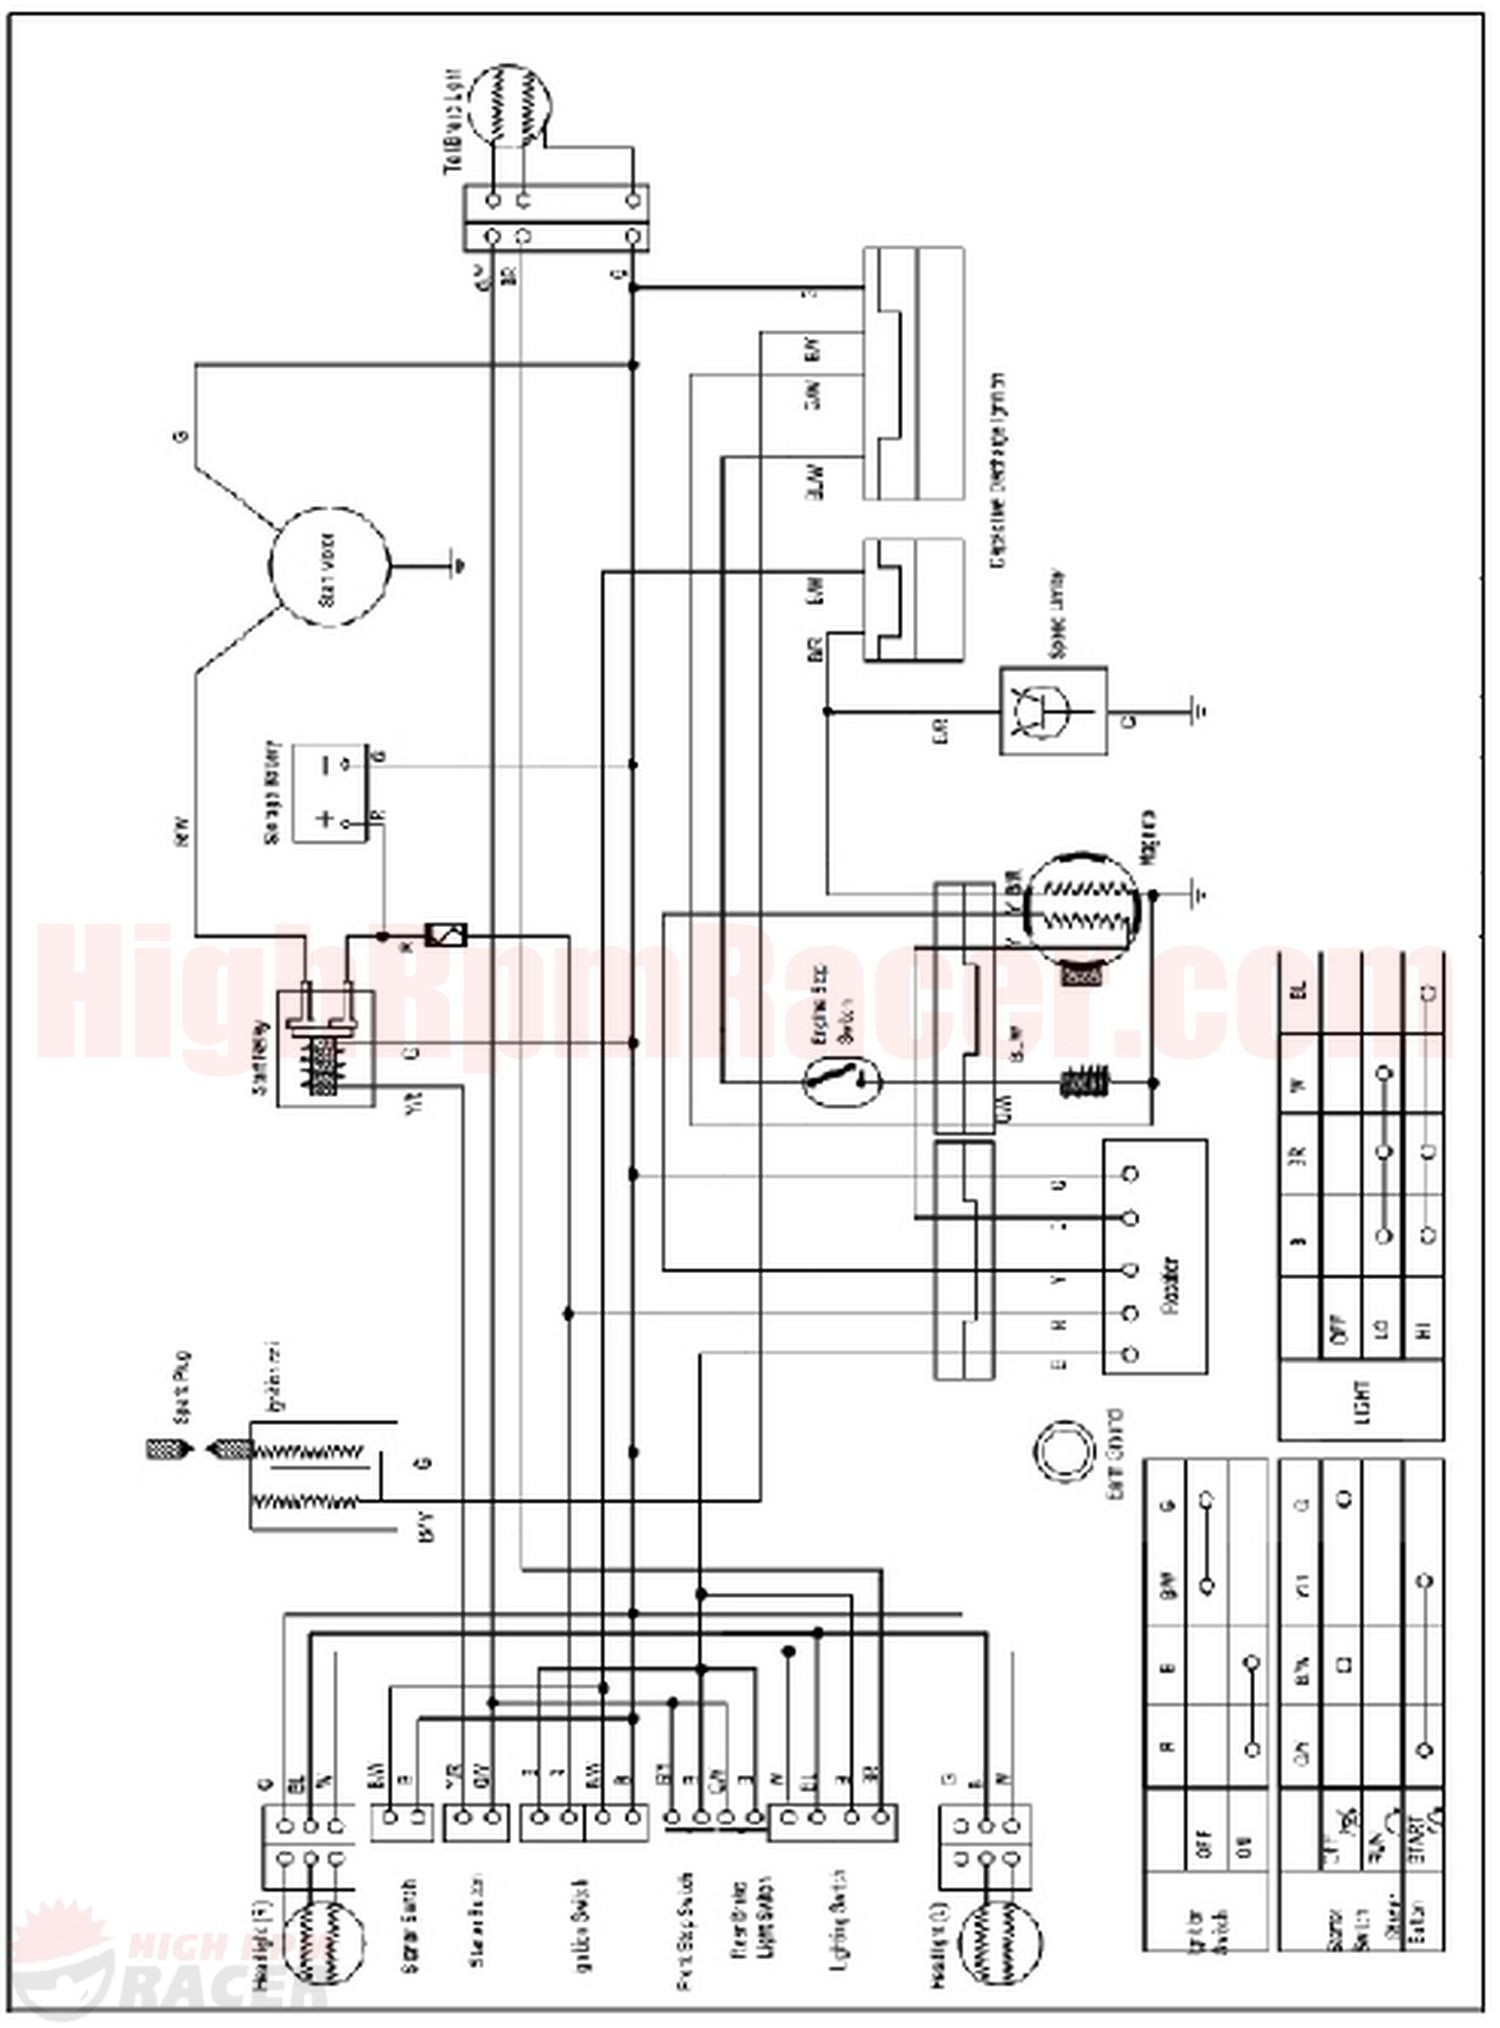 Baja 250 Atv Wiring Diagrams Starting Know About Wiring Diagram \u2022 Baja  Motorsports 250 Baja 250 Atv Wiring Diagrams